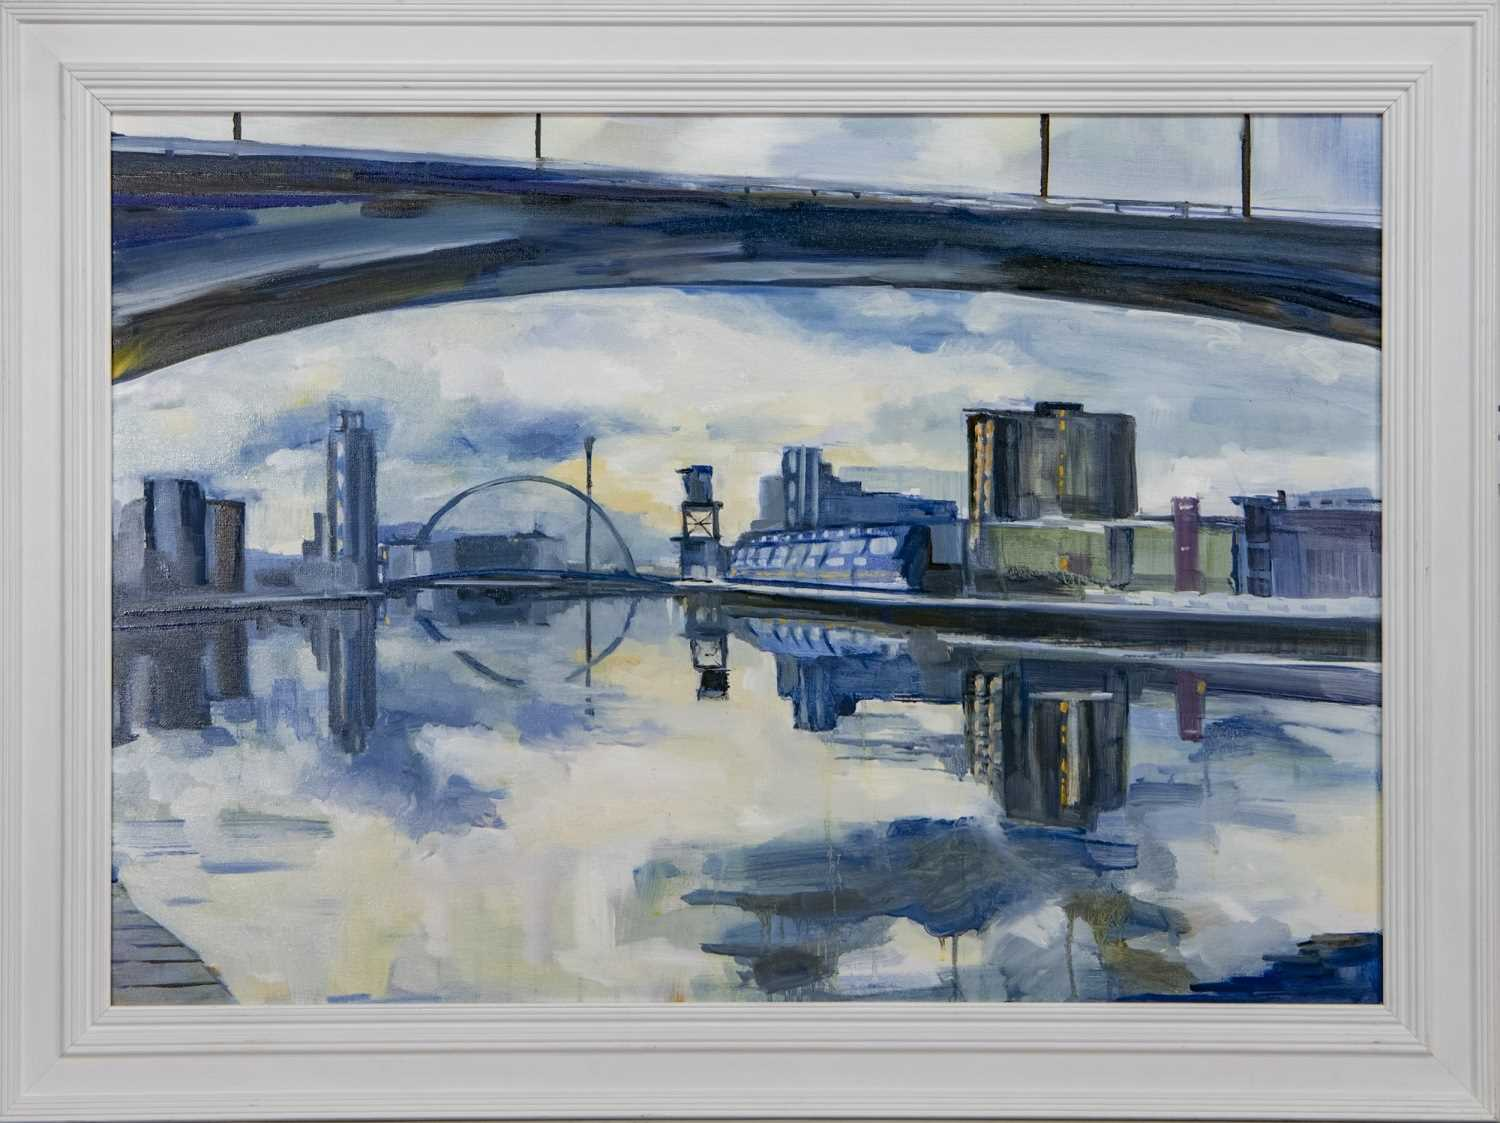 Lot 544 - THE CLYDE FROM UNDER THE KINGSTON BRIDGE, AN OIL BY HELEN MCDONALD MATHIE